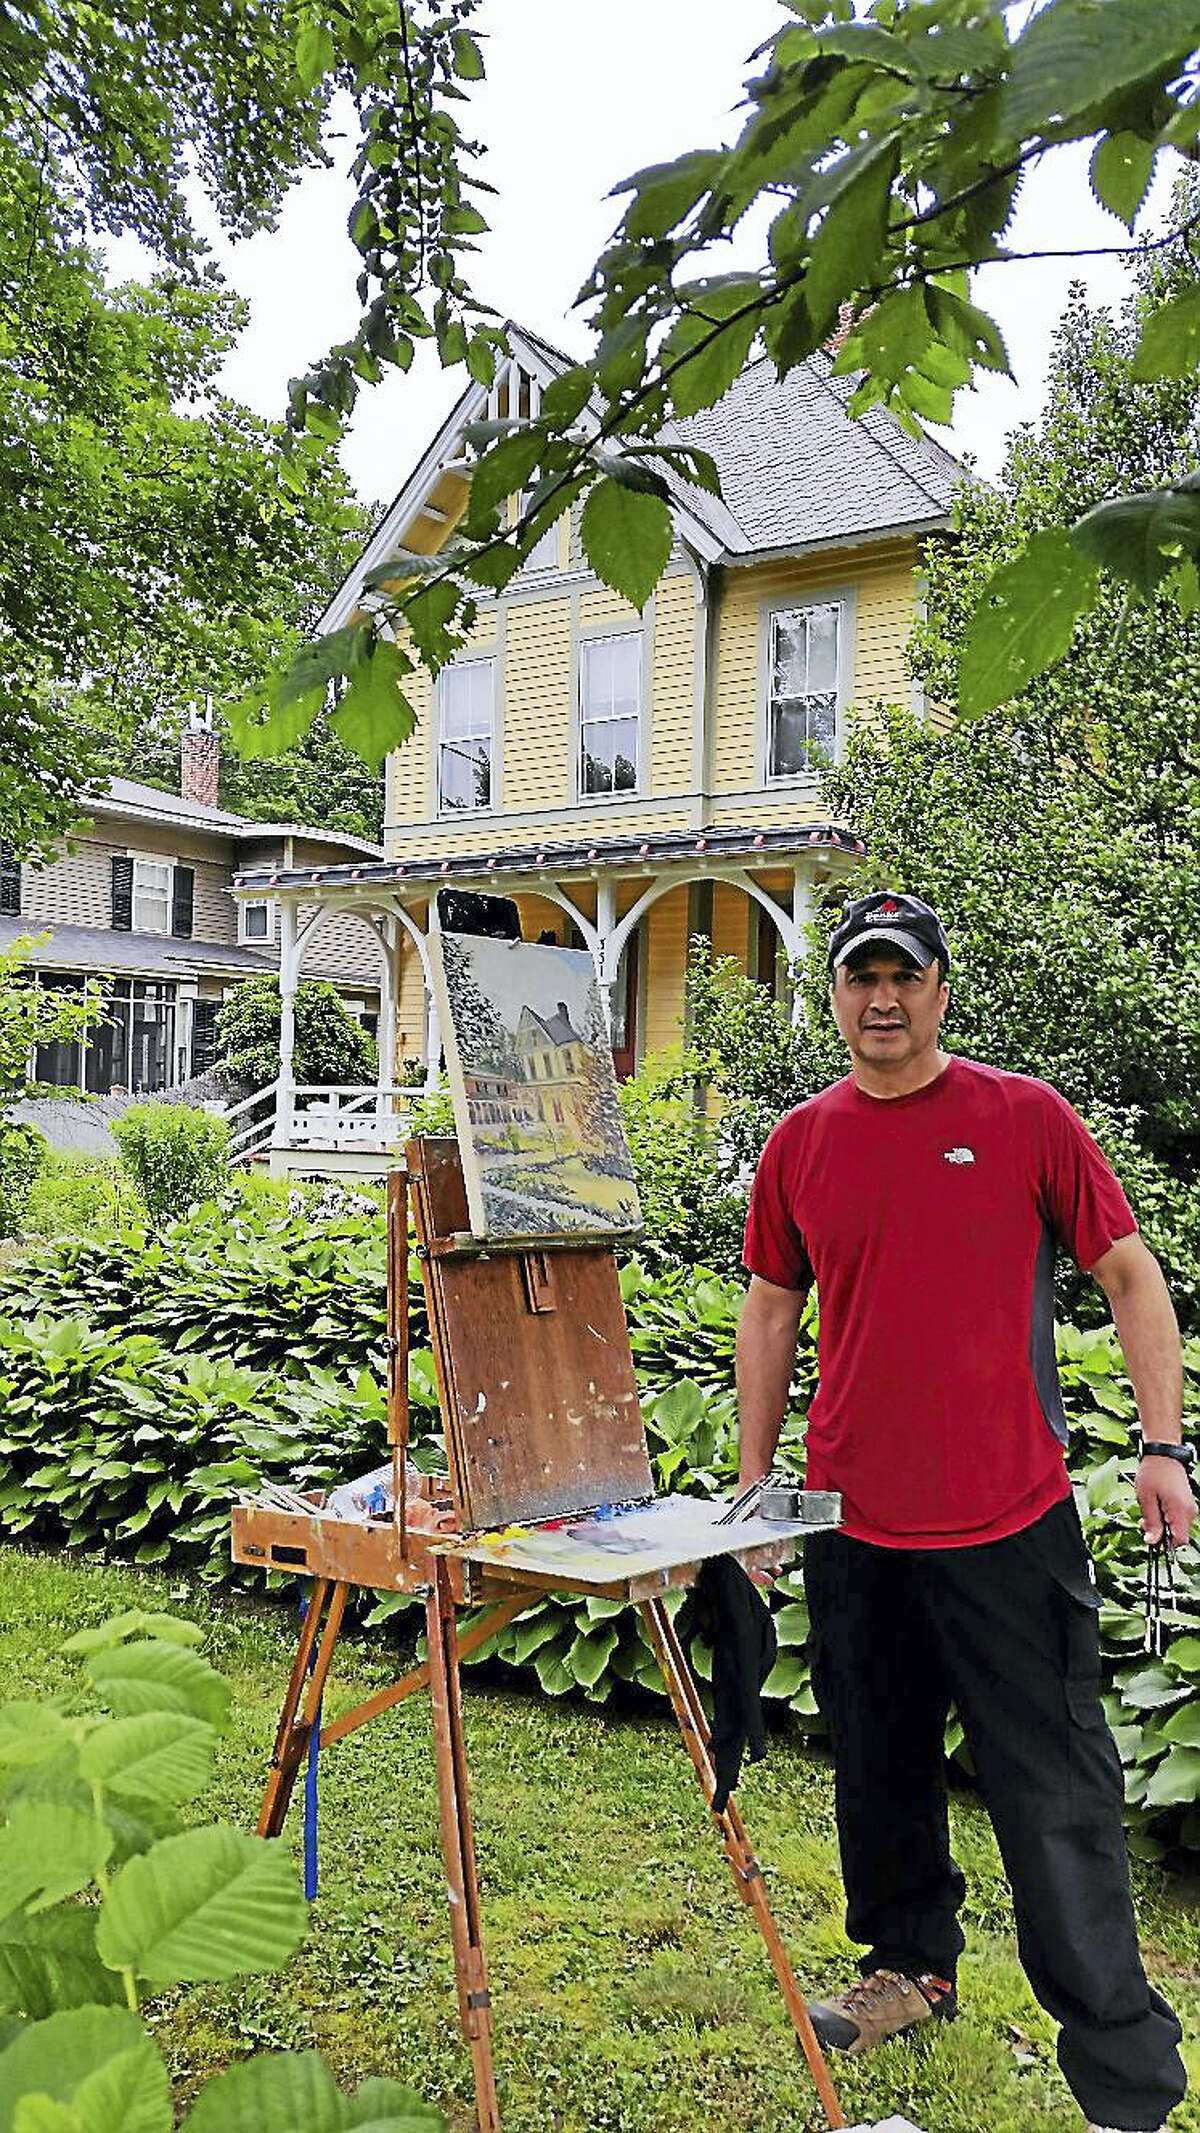 John Forgione, 56, of Easton, painted a neighboring house, an architectural office, as a subject during the Fine Line Art Gallery's Summer Paint-Out.